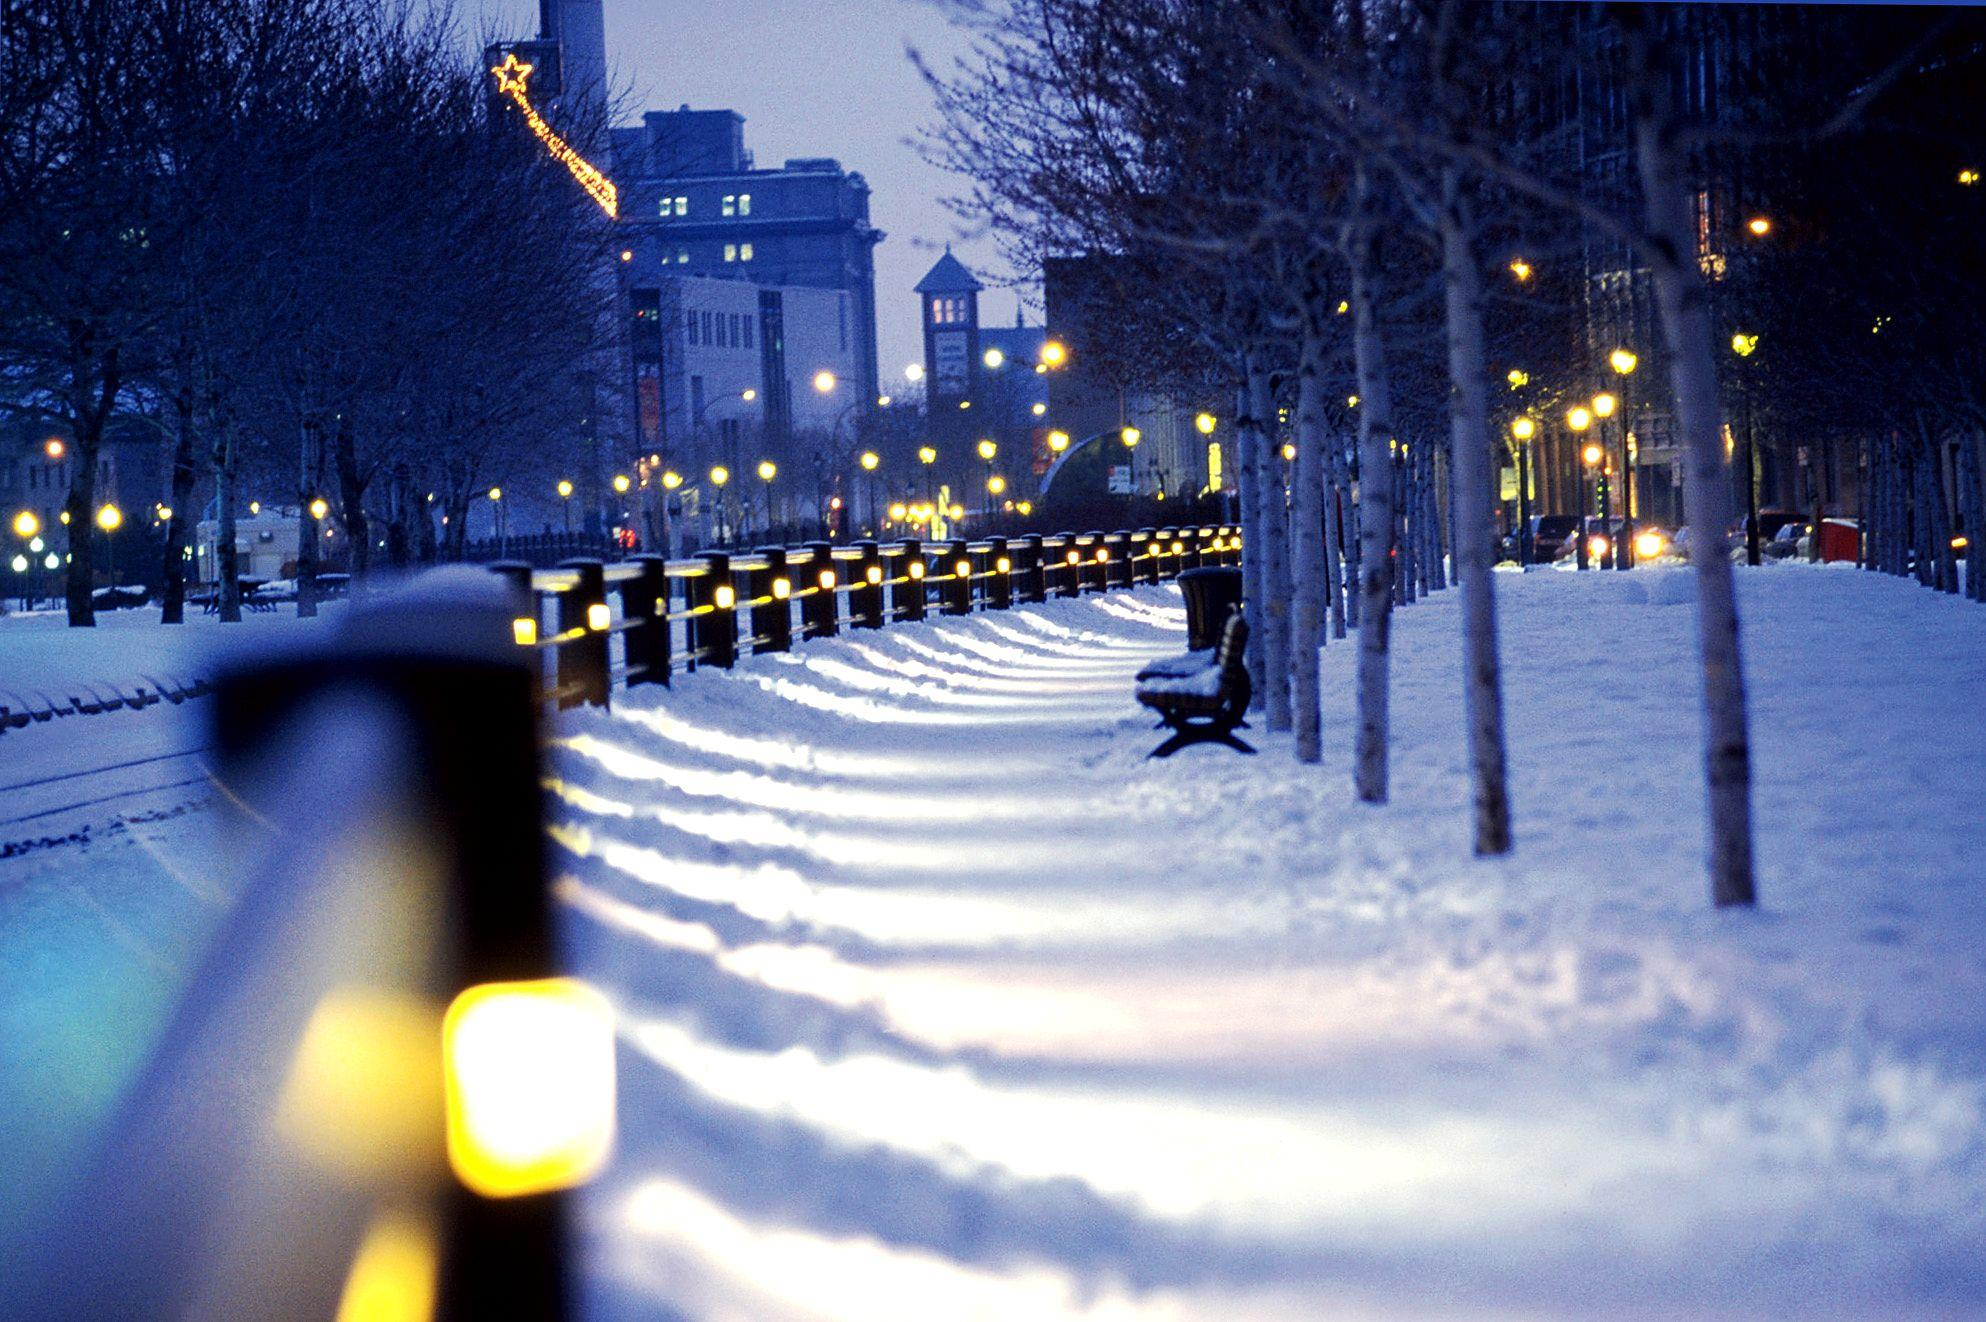 Montreal, Snow, Lights, Winter, City, Canada Wallpapers HD .